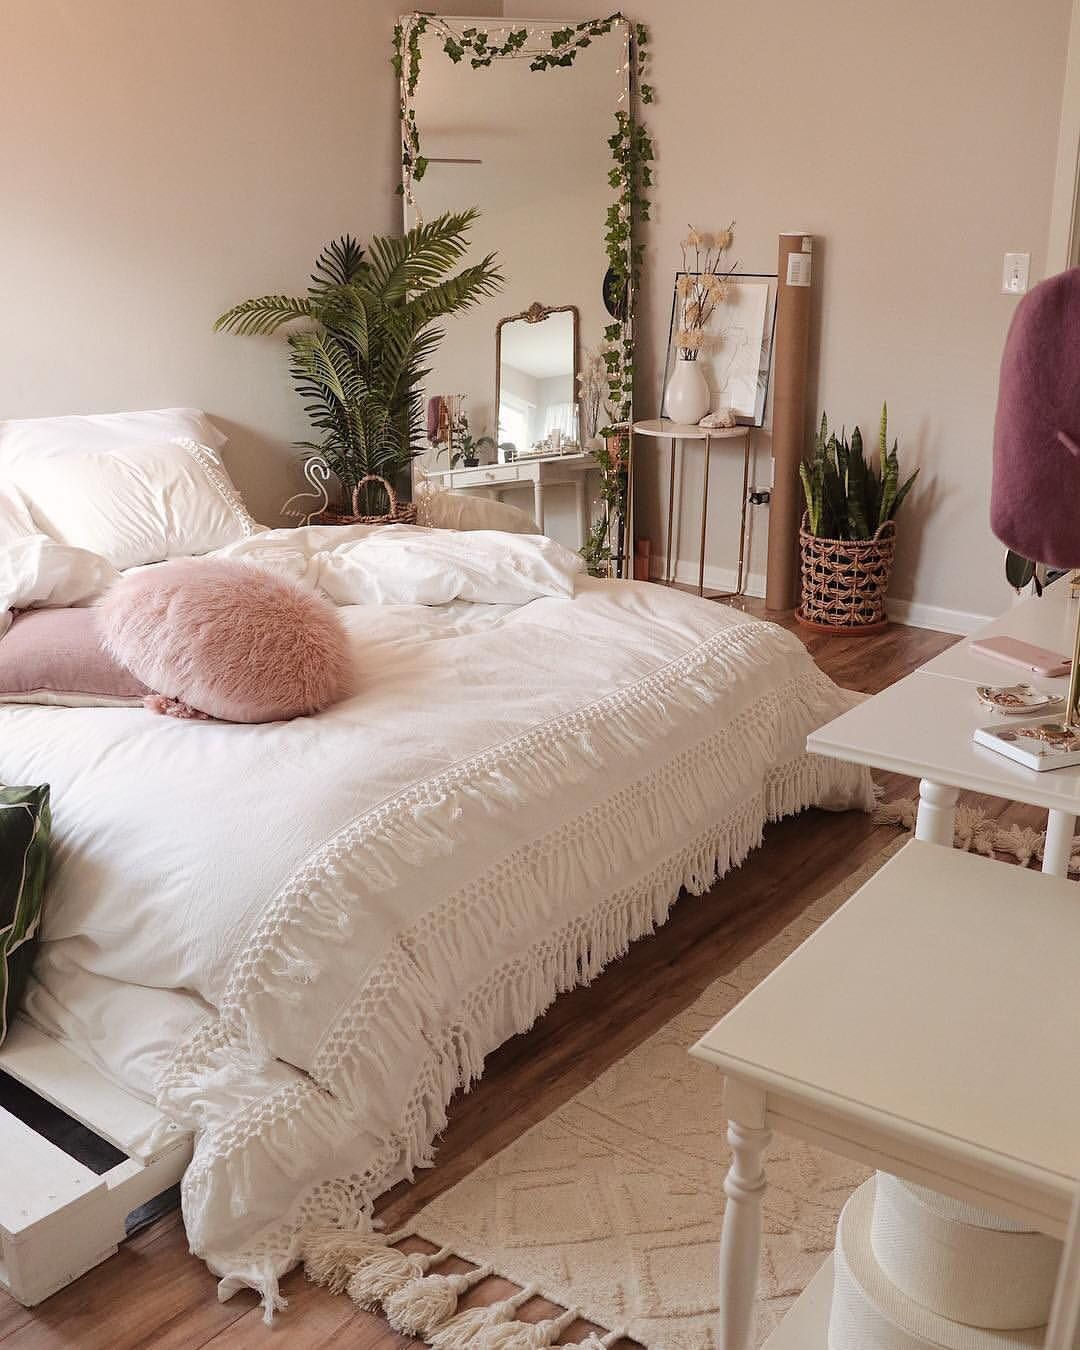 Thanks For The Bedroom Inspo Celeste Escarcega Room Ideas In